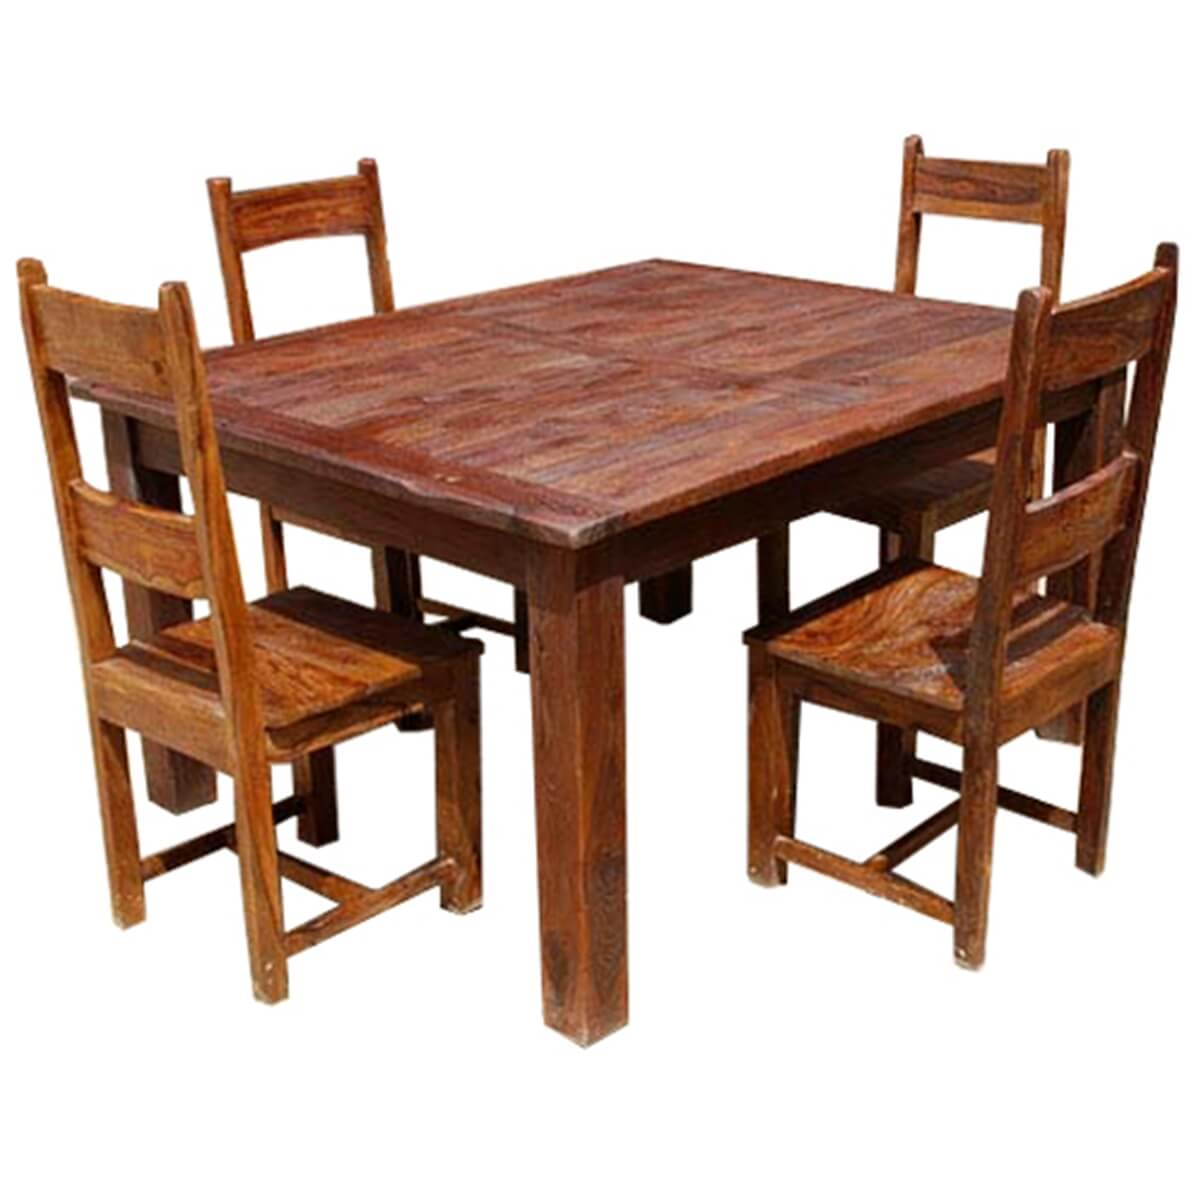 Solid Wood Dining Room Tables ~ Rustic solid wood appalachian dining room table chair set